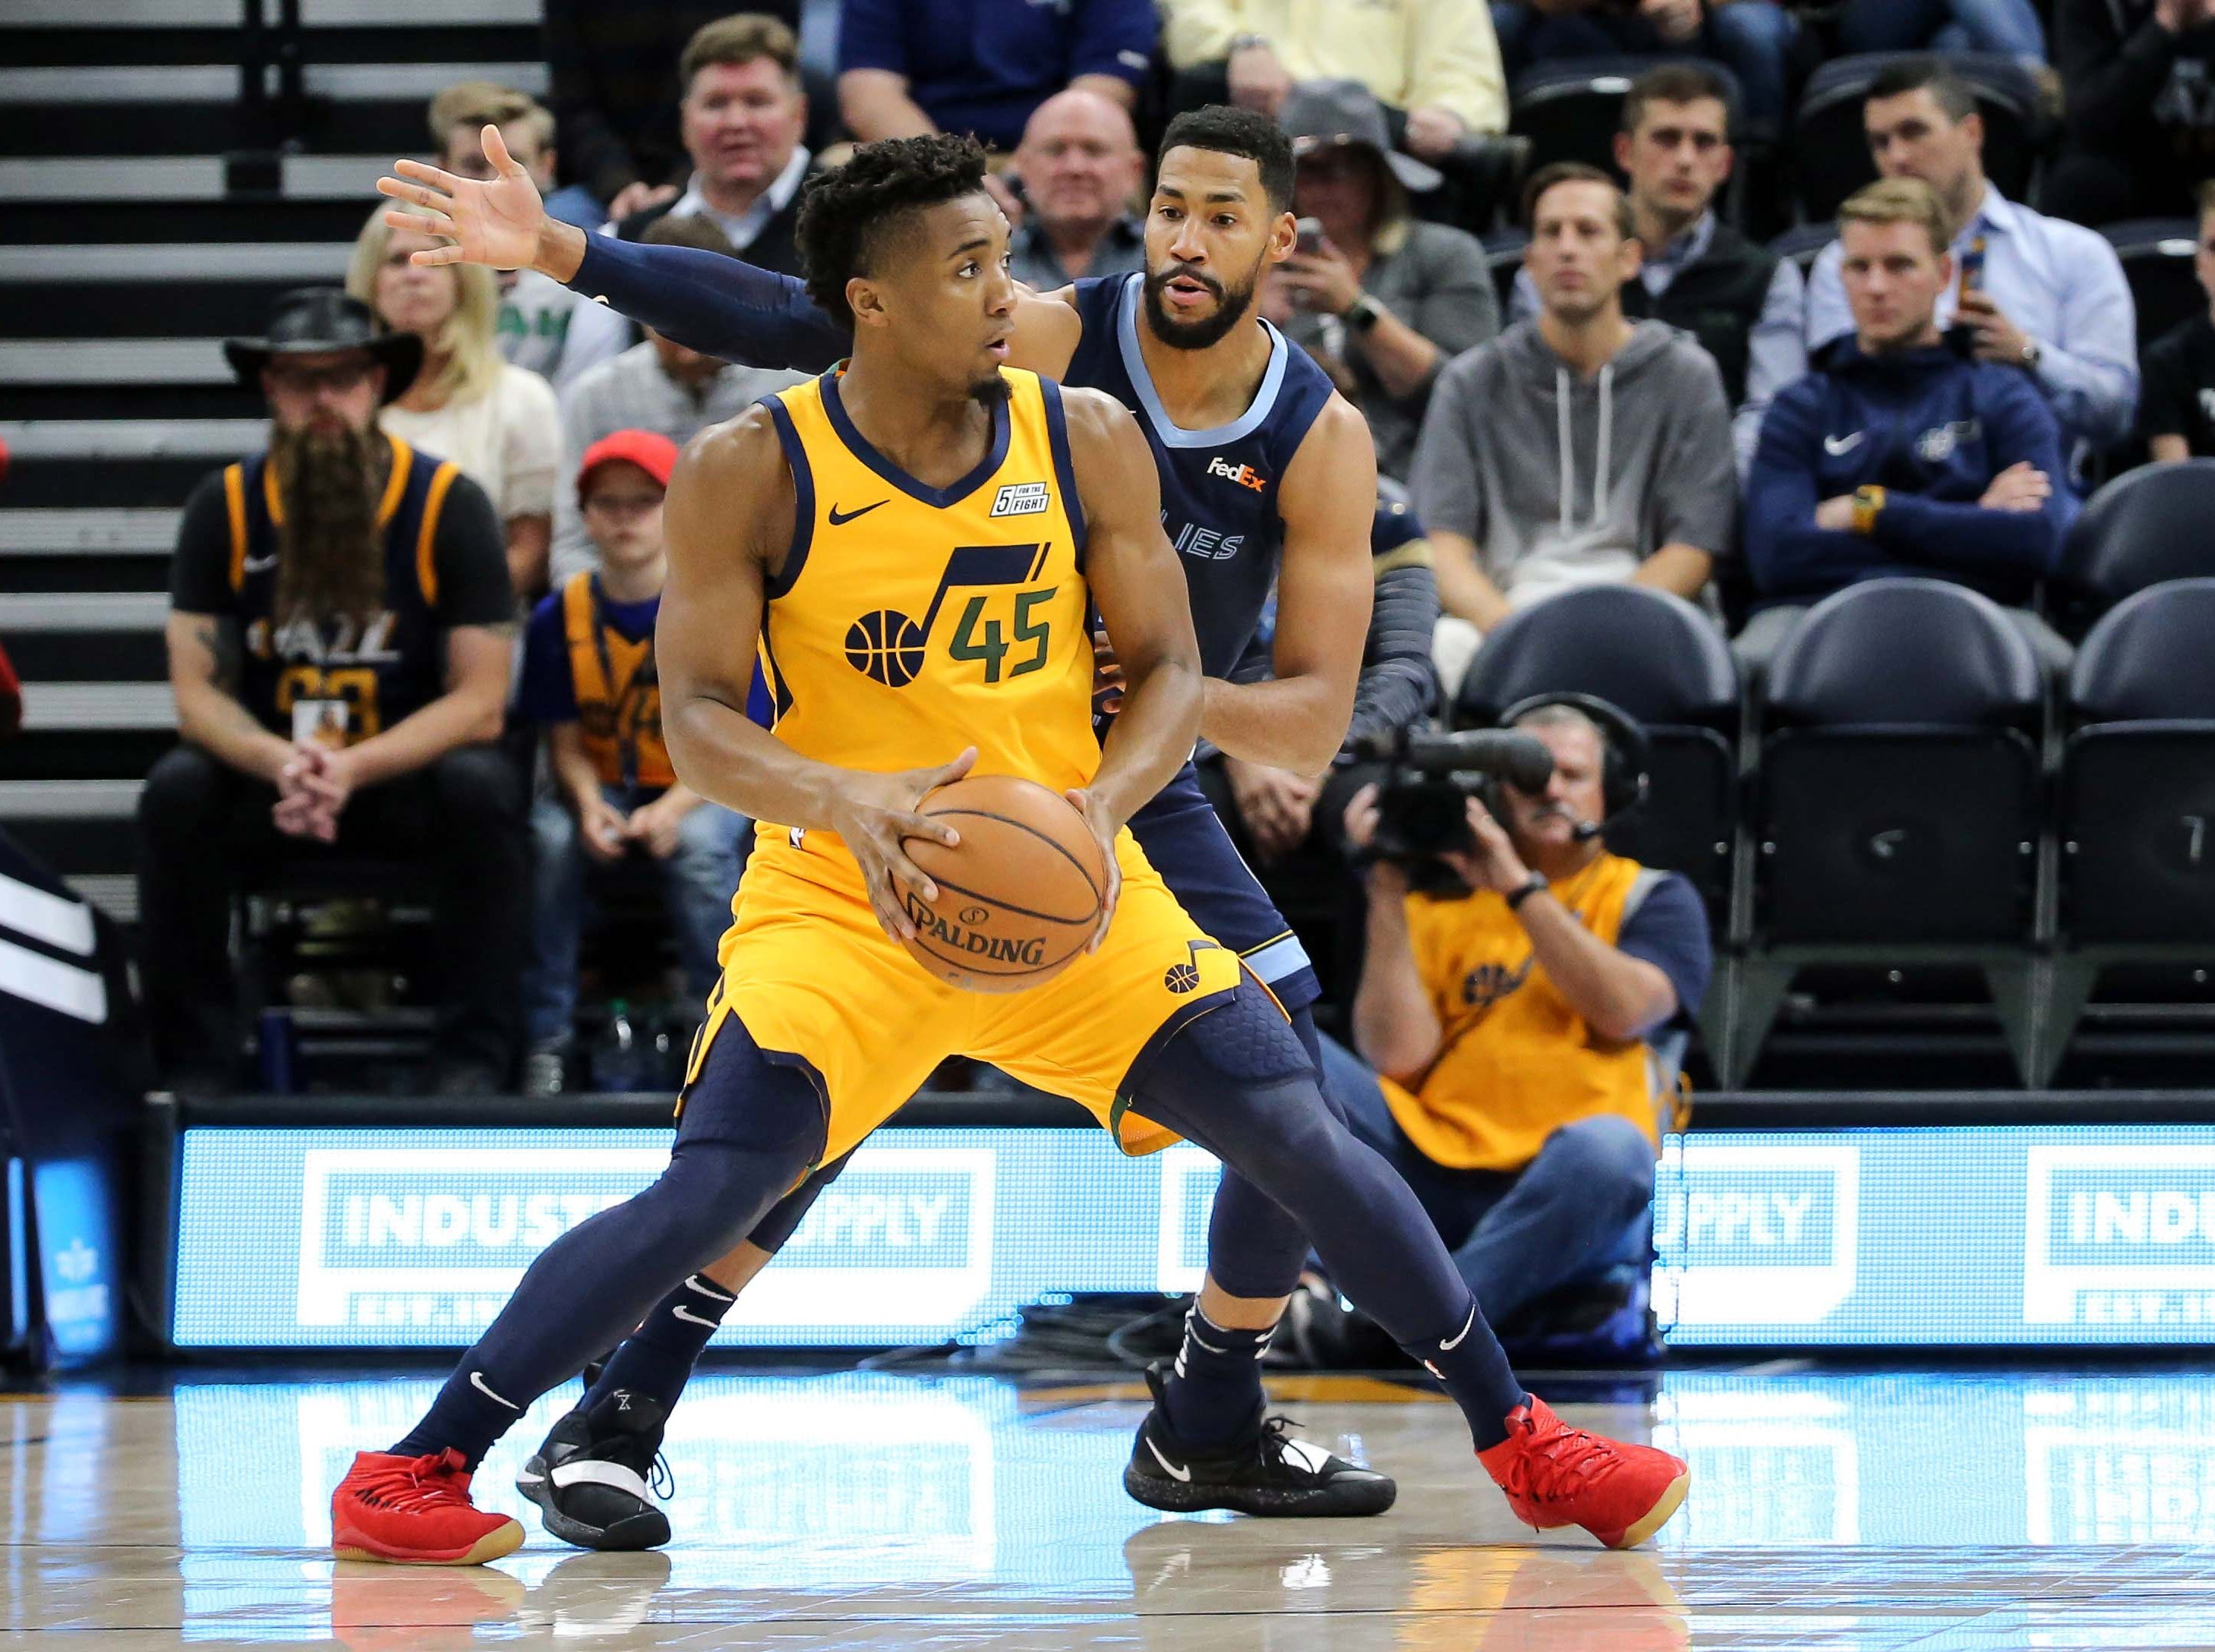 Oct 22, 2018; Salt Lake City, UT, USA; Utah Jazz guard Donovan Mitchell (45) controls the ball and keeps it away from Memphis Grizzlies guard Garrett Temple (17) during the first quarter at Vivint Smart Home Arena.